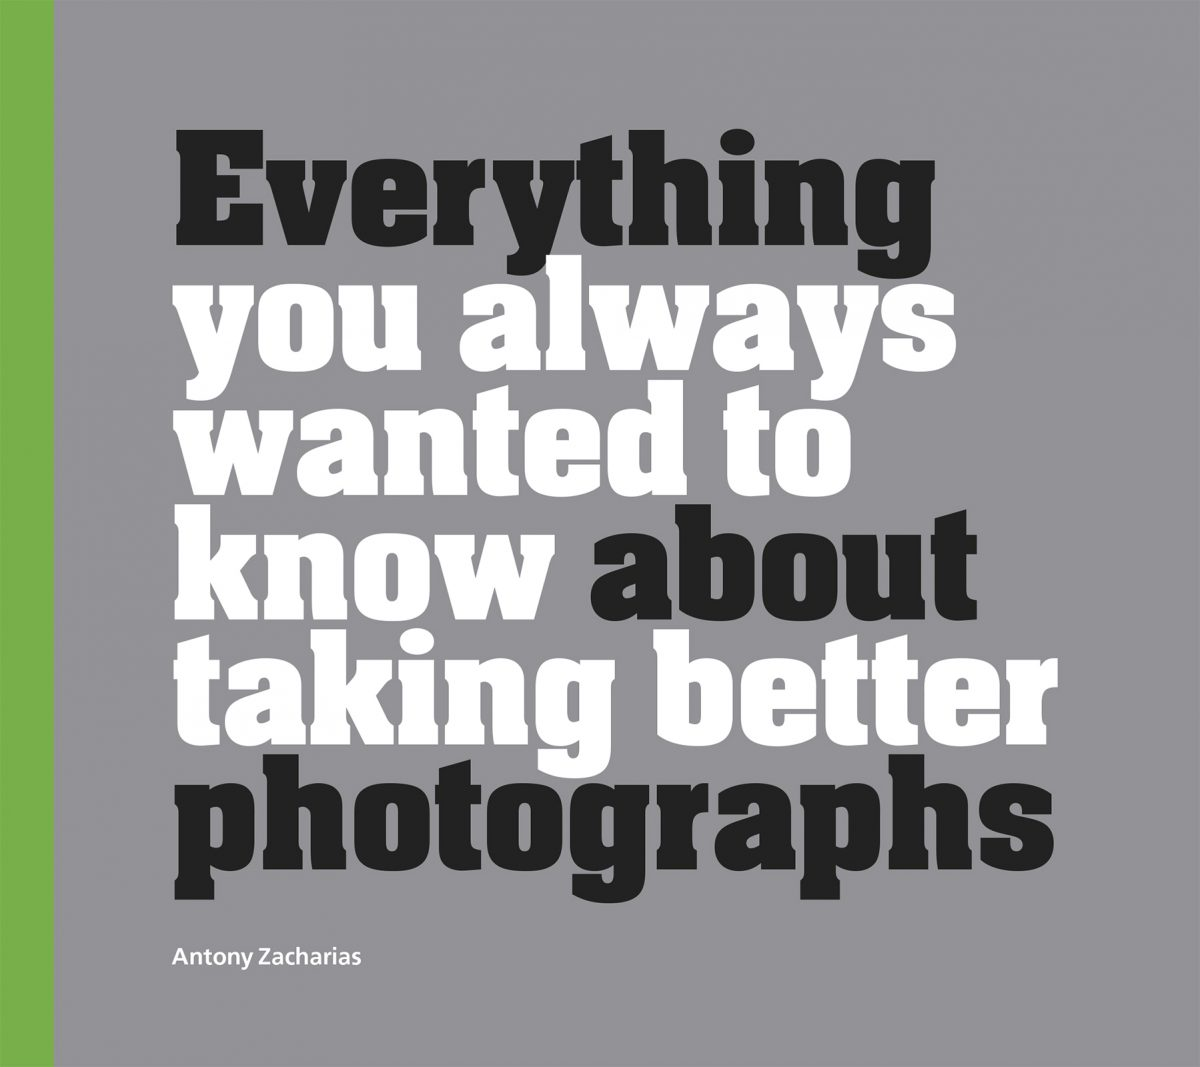 Antony Zacharias Antonyz photography book cover everything you always wanted to know about taking better photographs